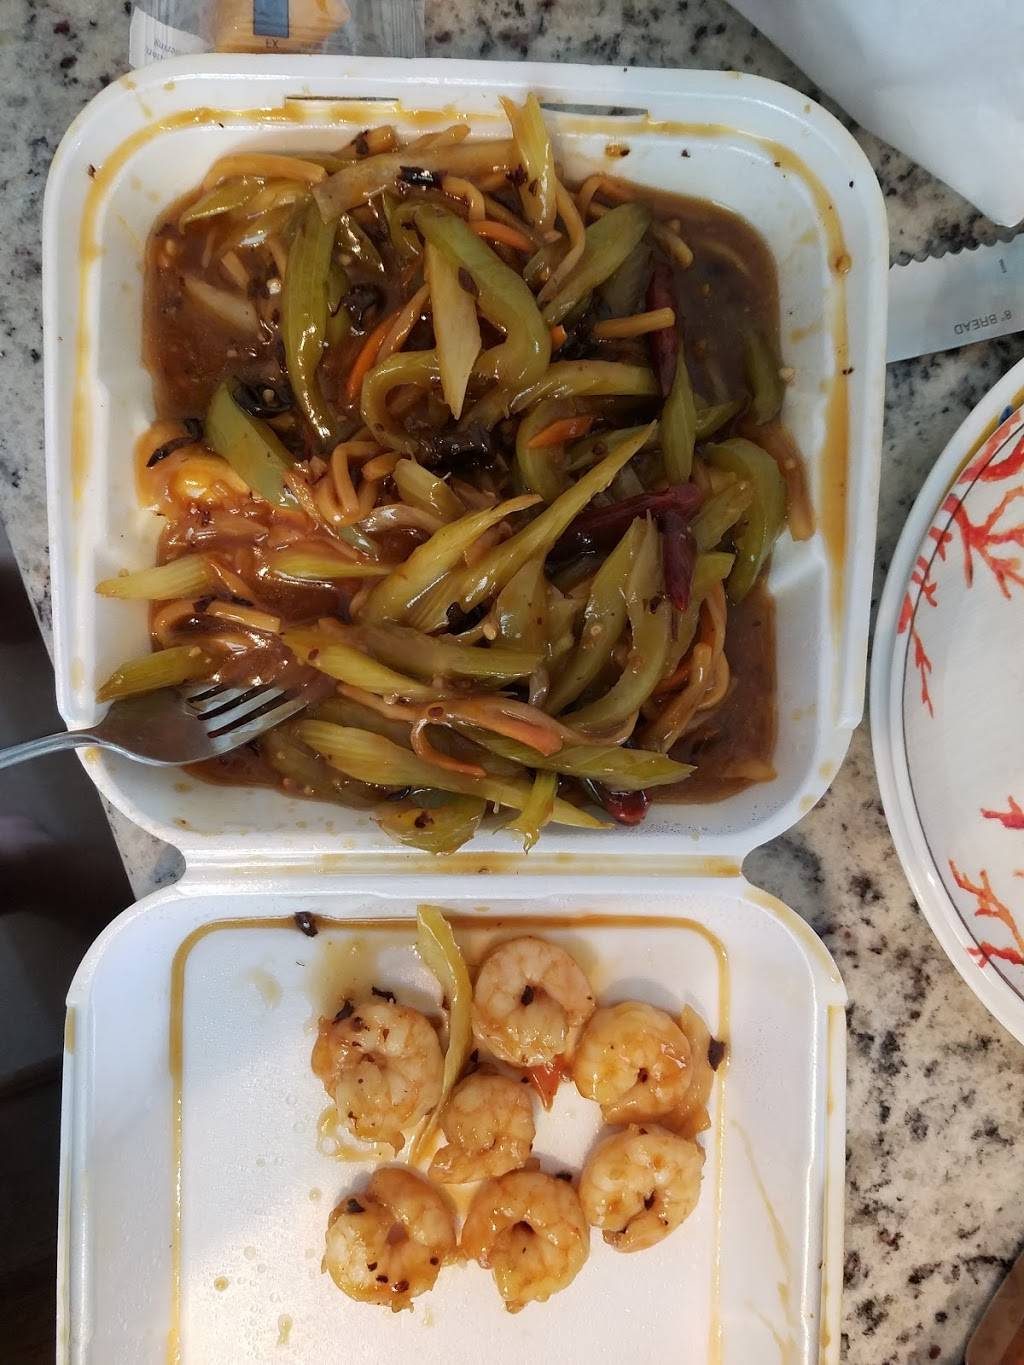 Naturally Chinese LLC | meal delivery | 5647 S 3500 W, Roy, UT 84067, USA | 8019853348 OR +1 801-985-3348